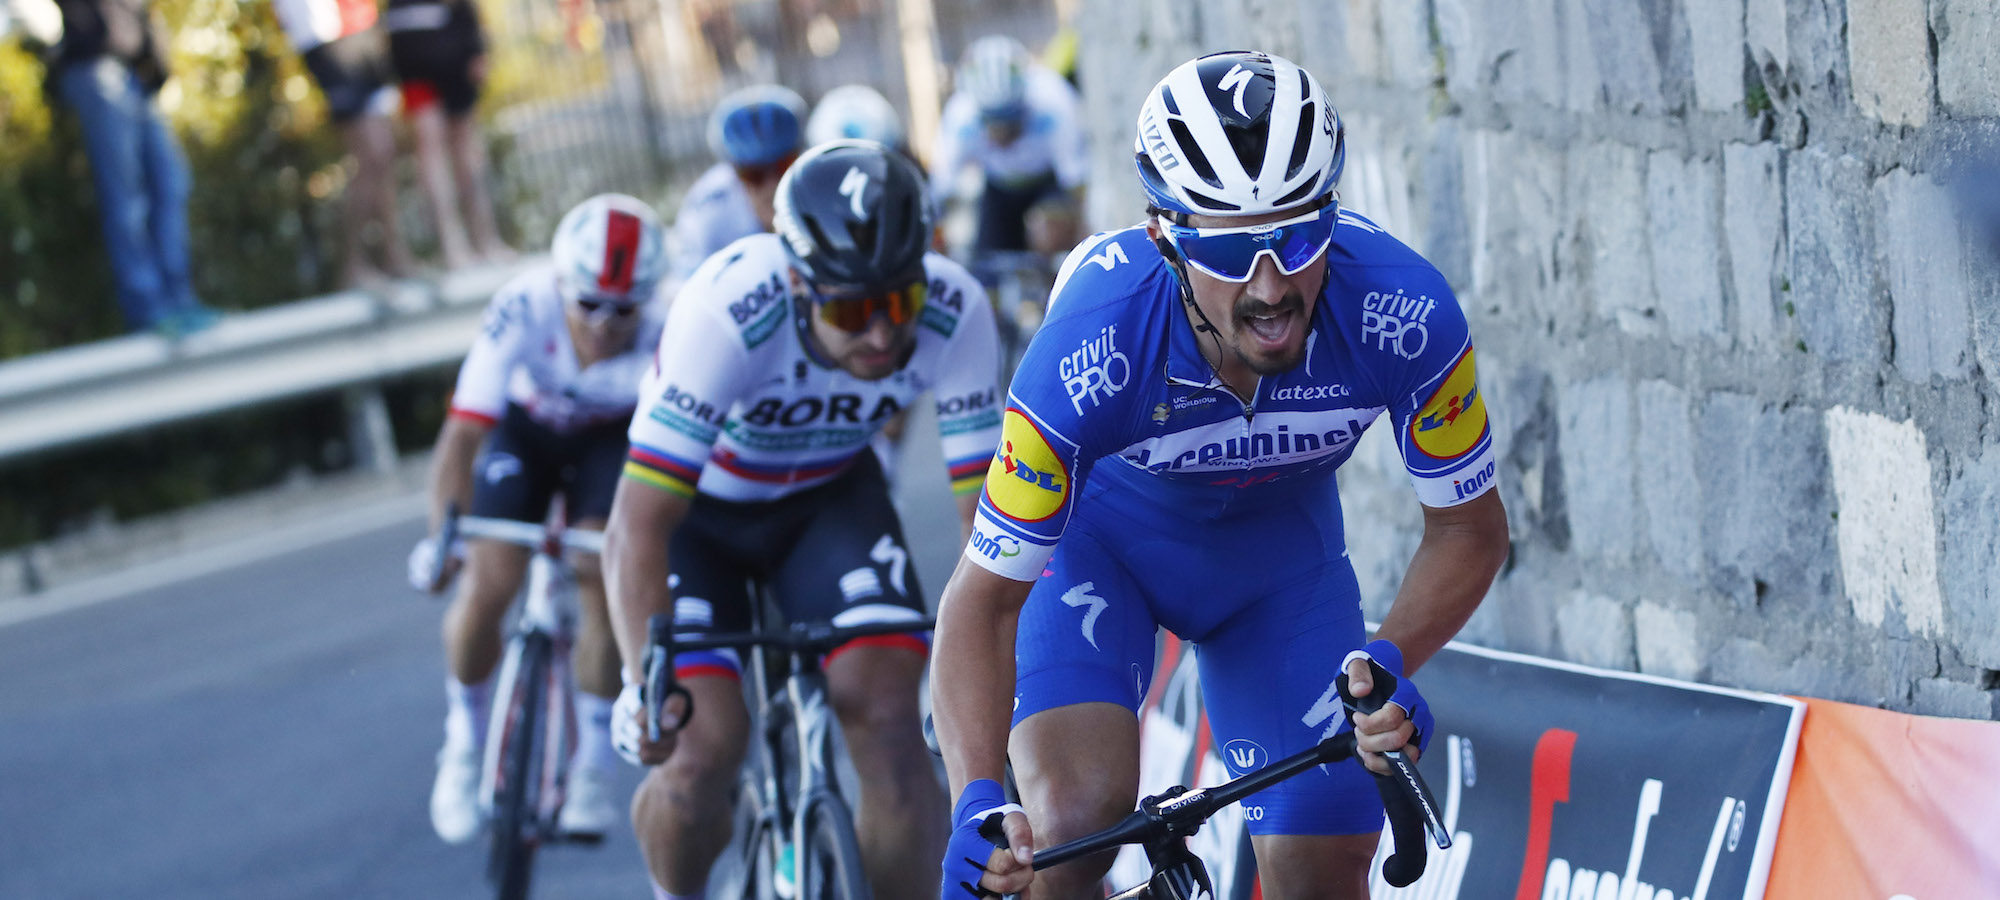 a3f68da0e Five things we learned from the 2019 Milan-San Remo